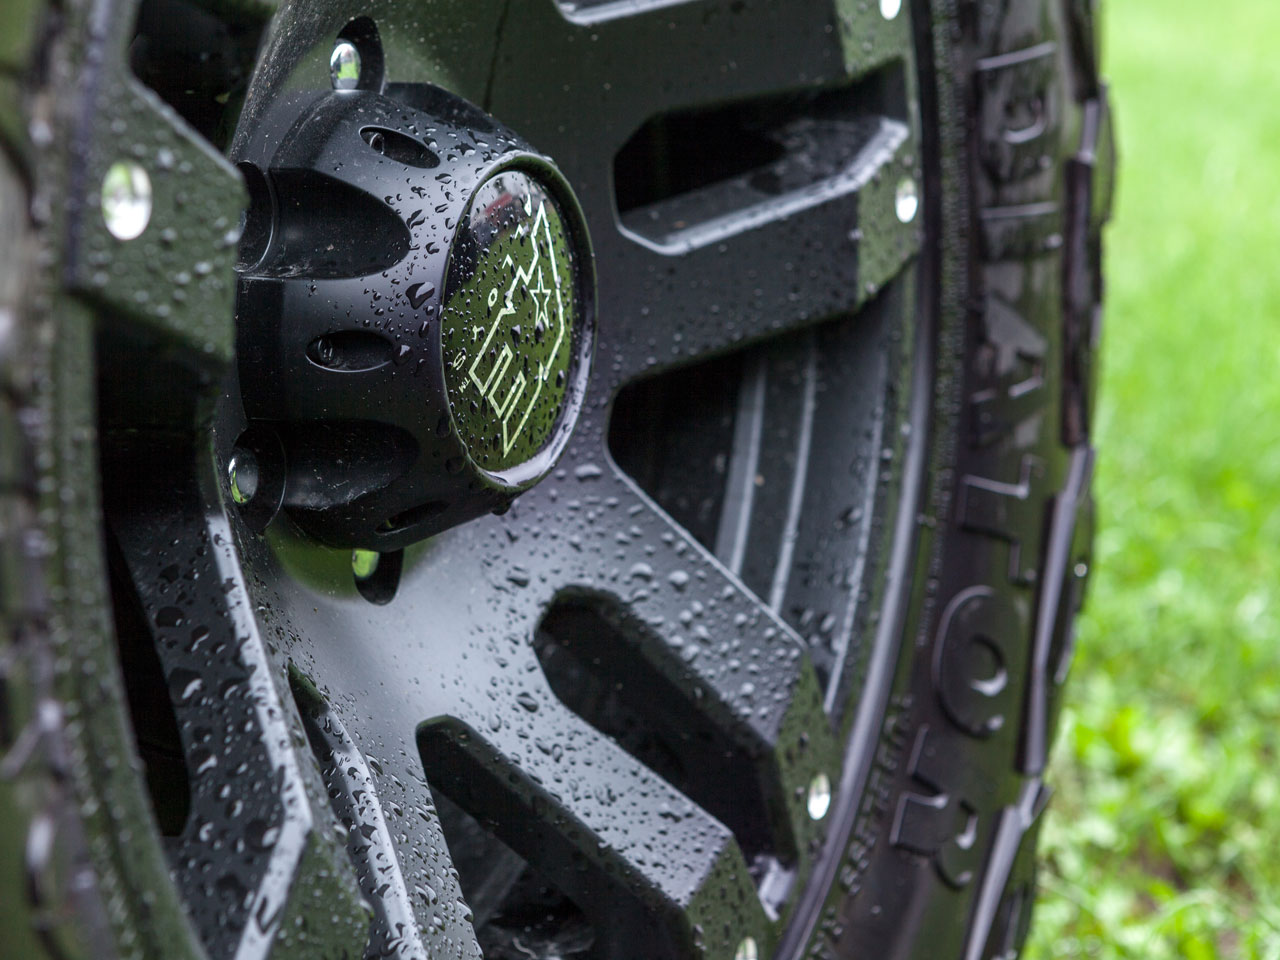 Close up of a wet tire